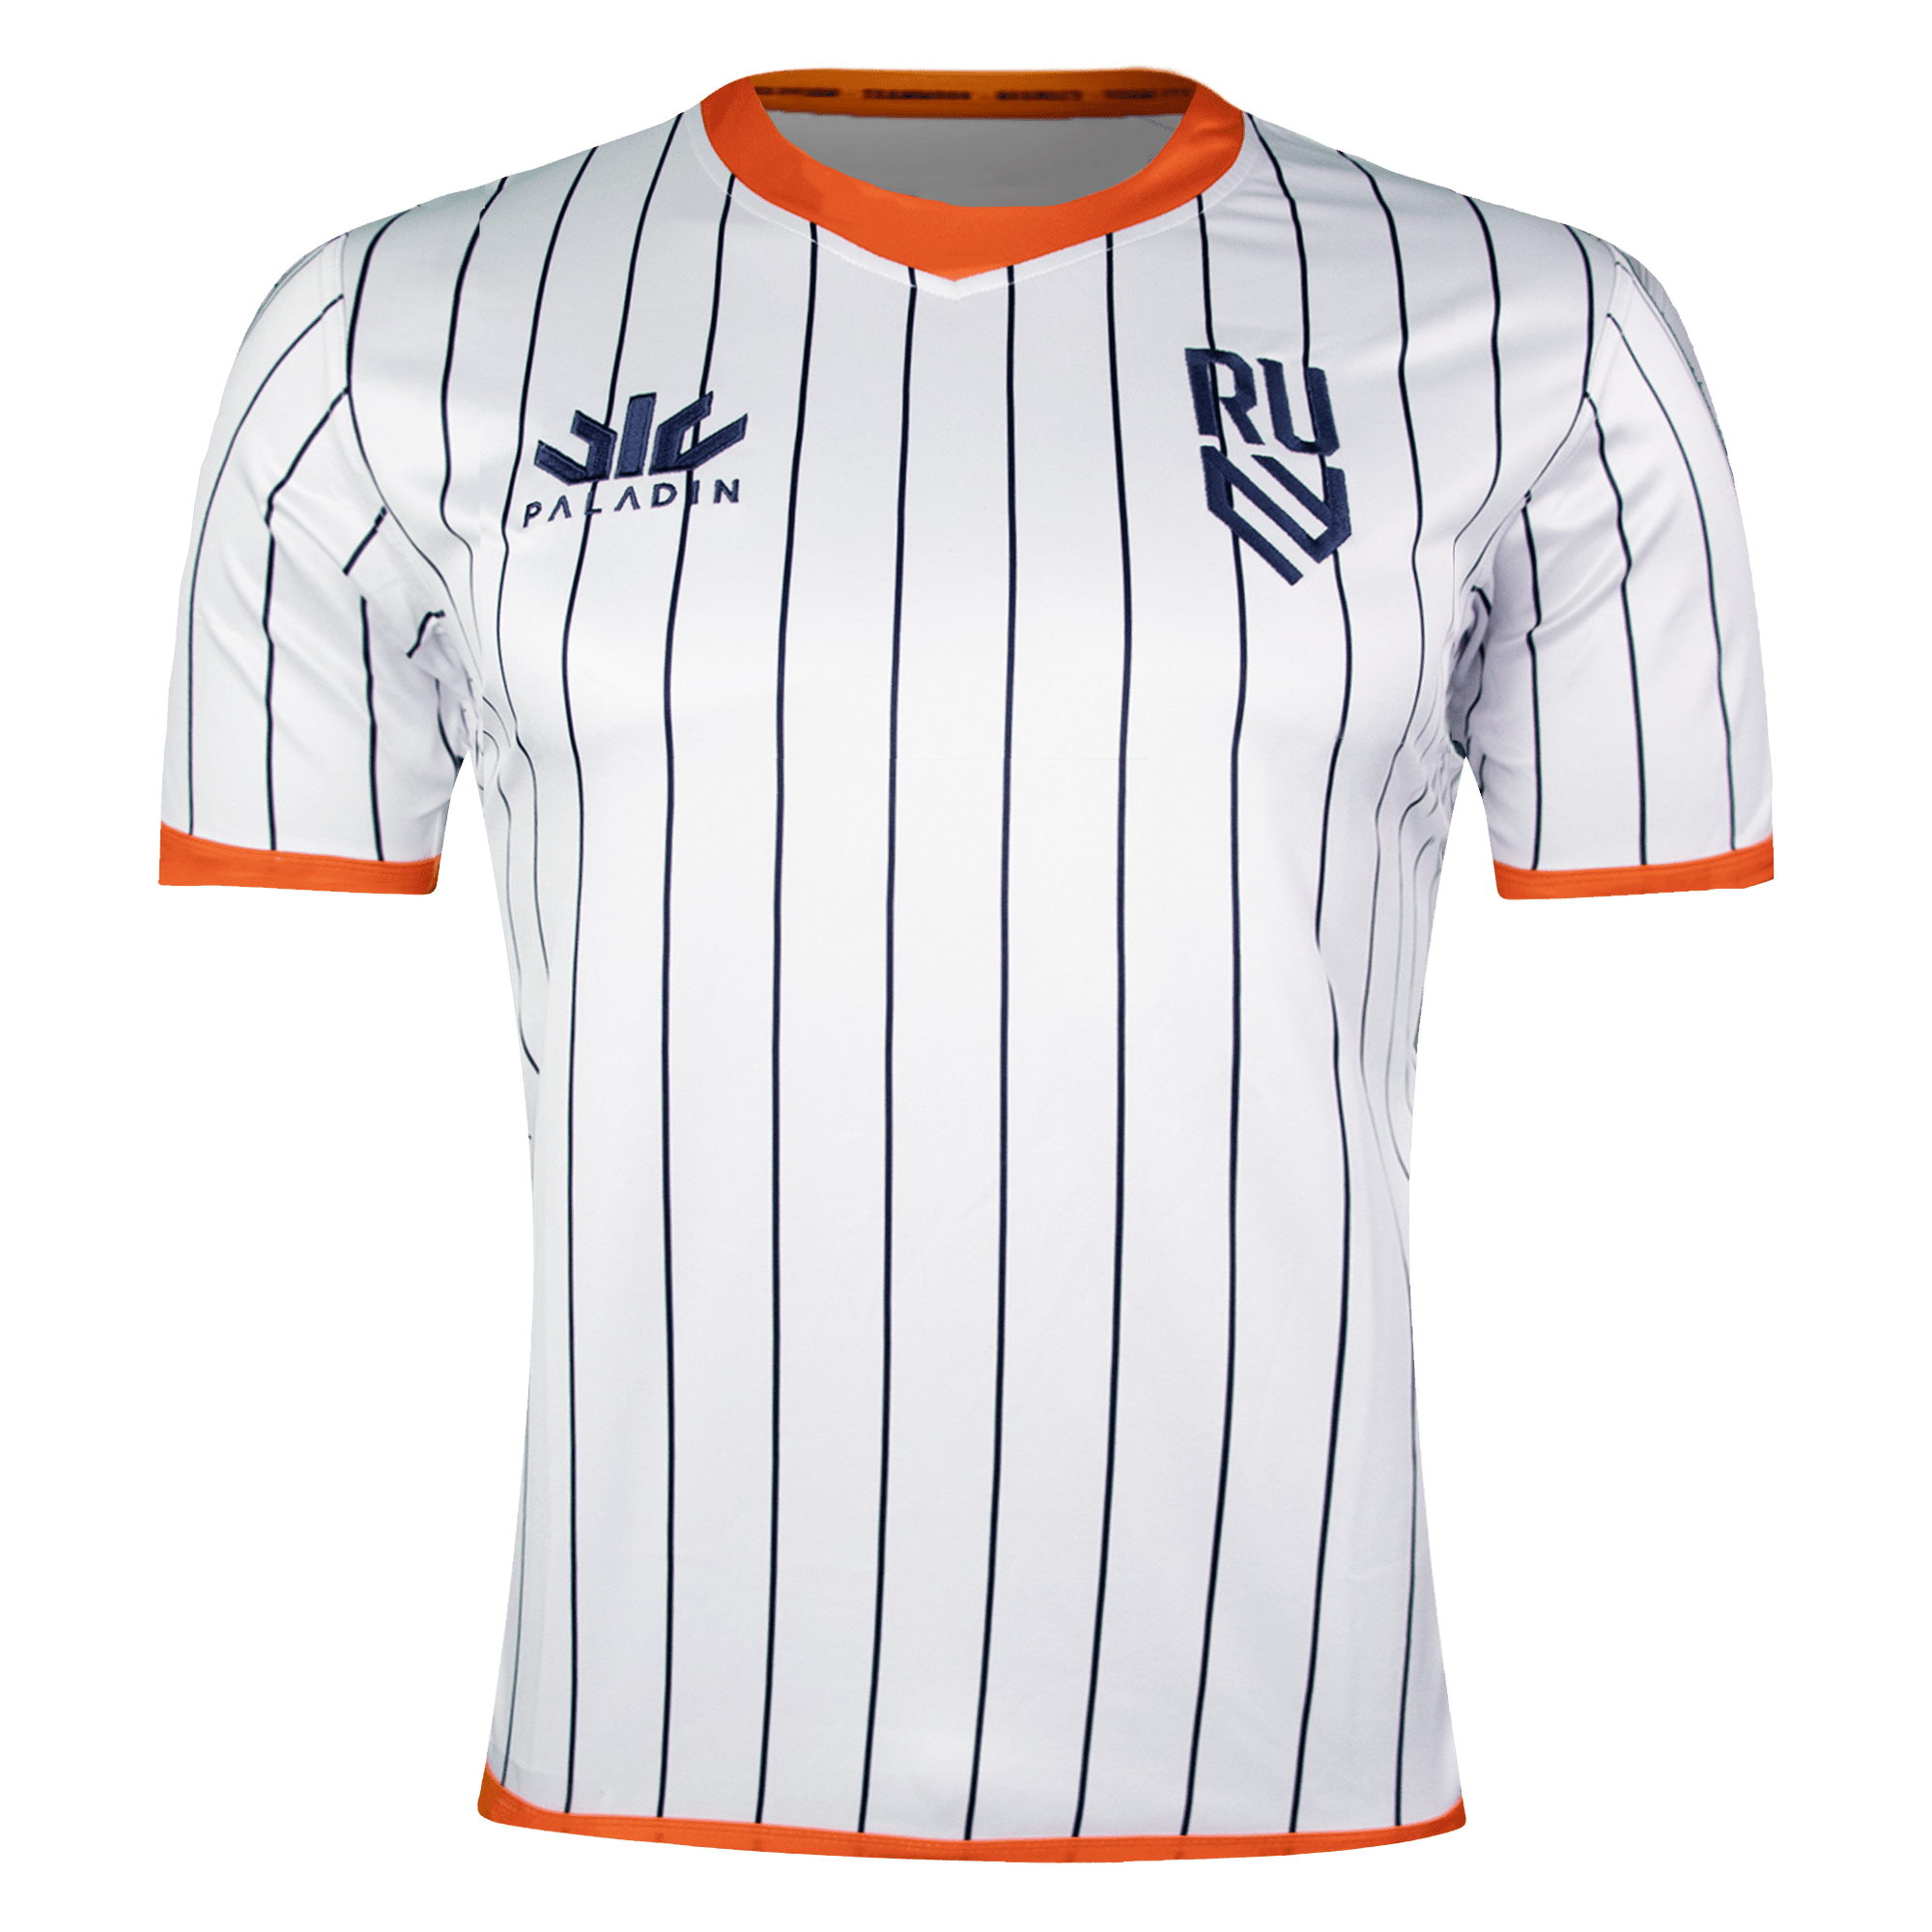 Paladin Rugby United NY Away Jersey White With Navy Pinstripe & Orange Trim